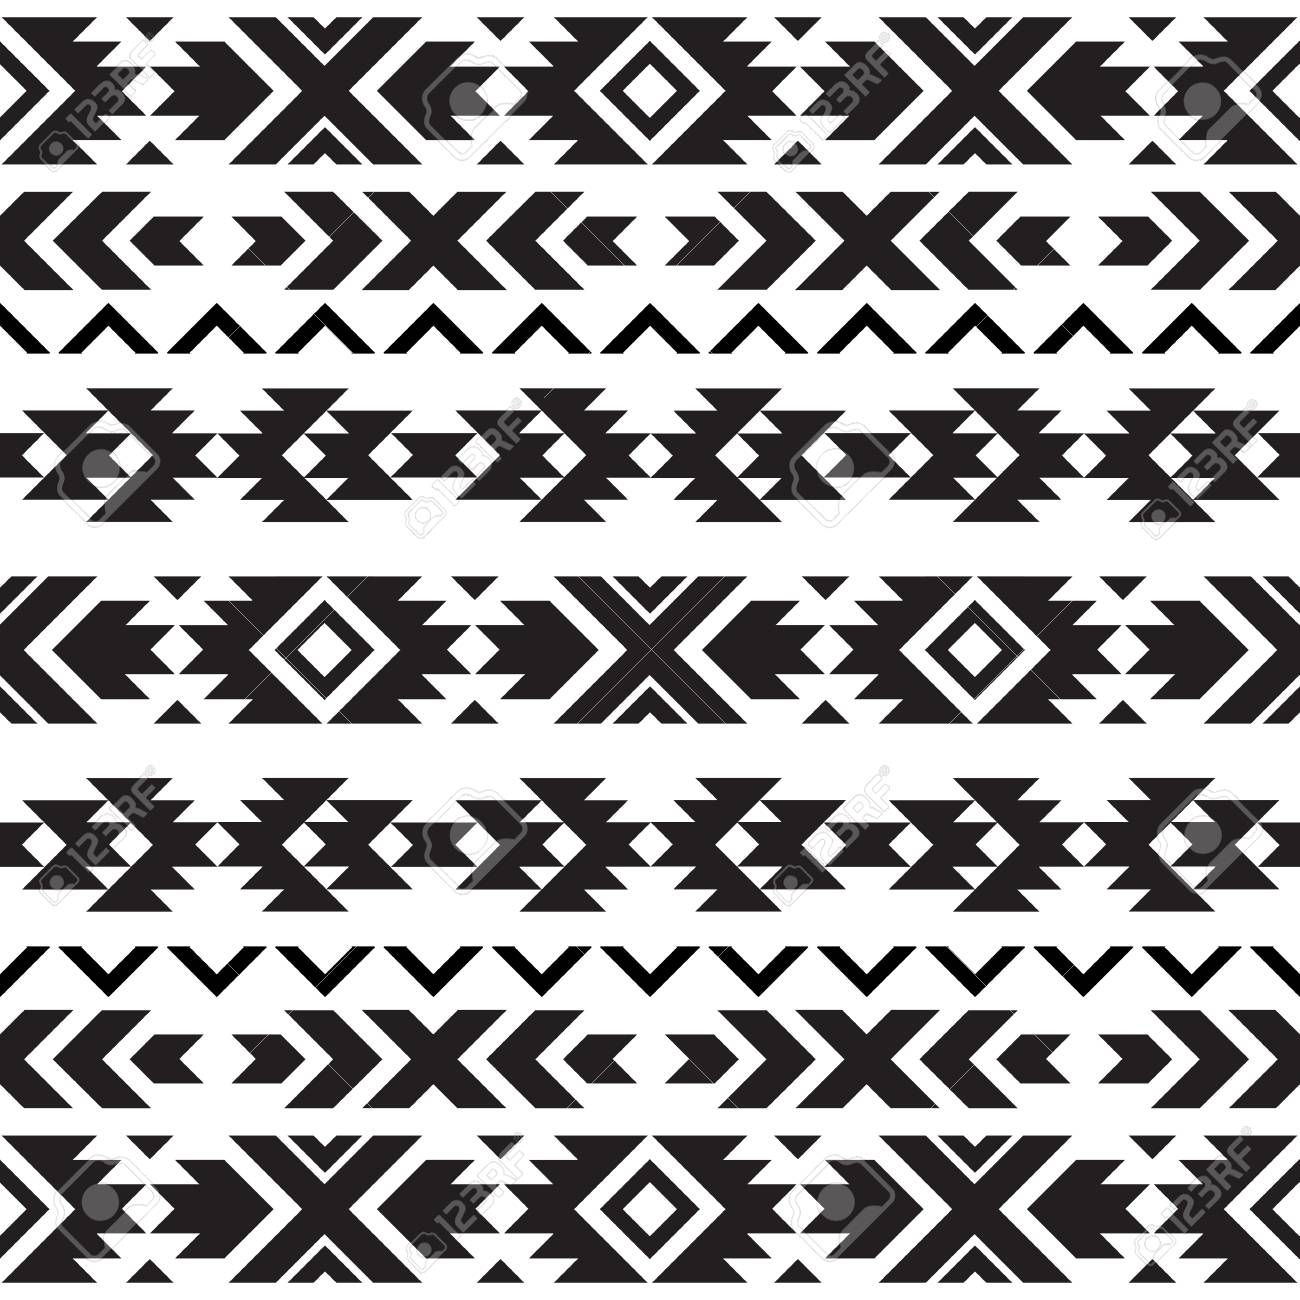 Seamless tribal black and white pattern - 102216823